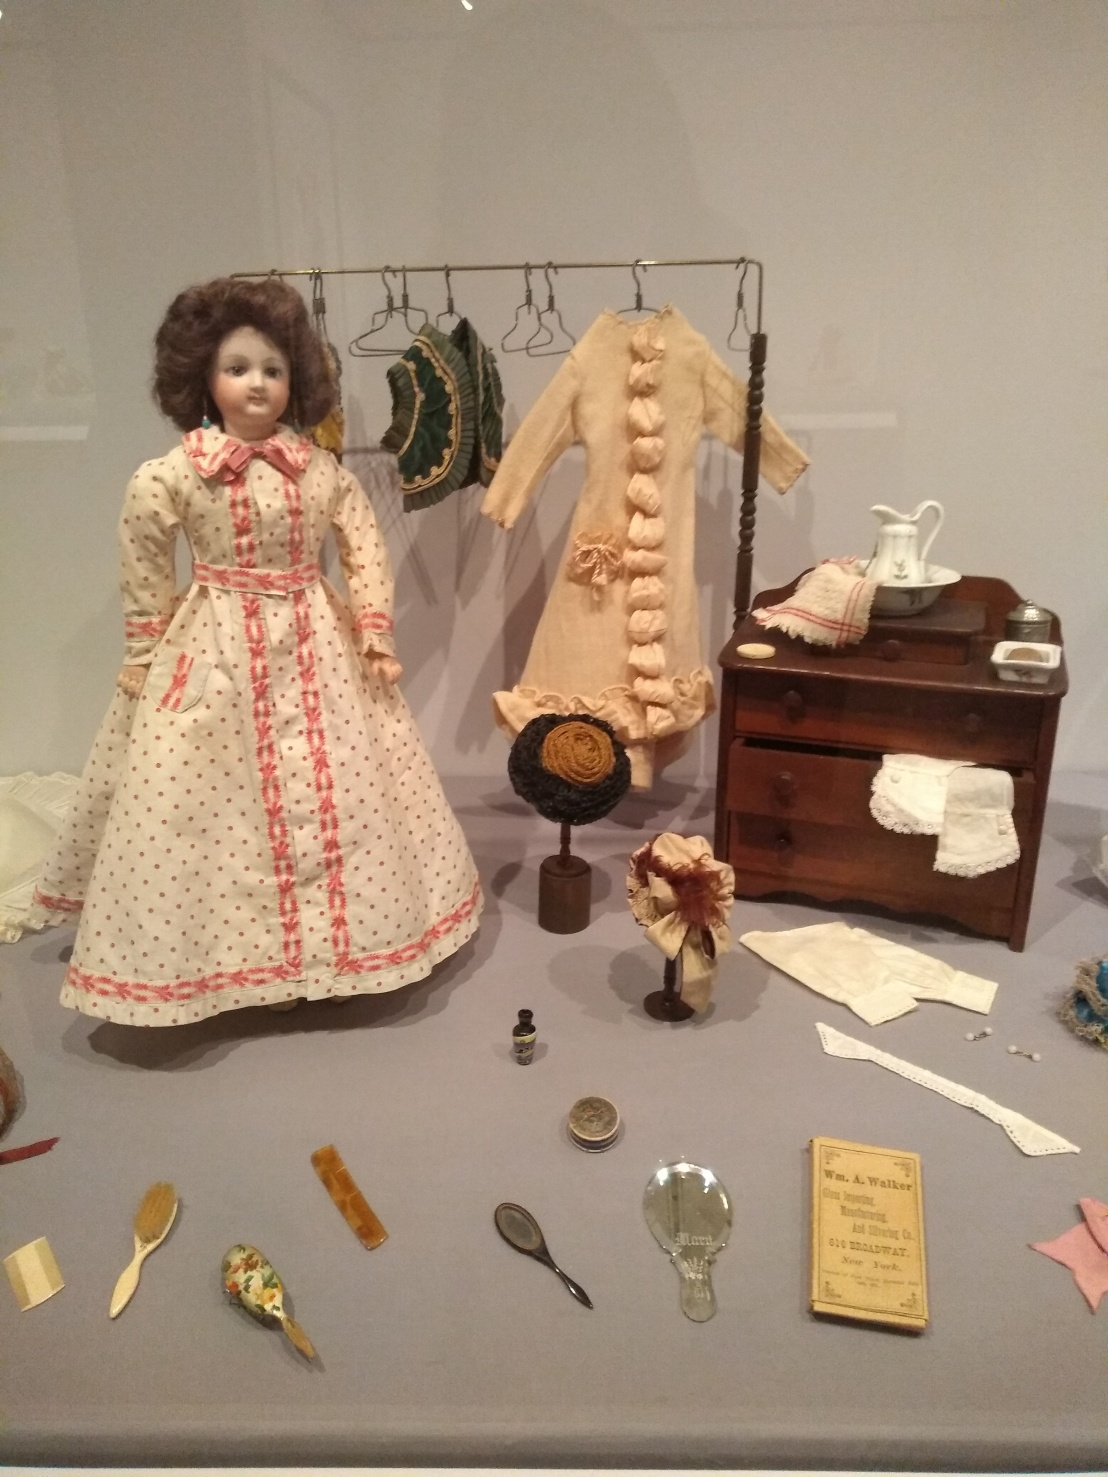 Little Ladies: Victorian Fashion Dolls and the Feminine Ideal; Exhibit Review